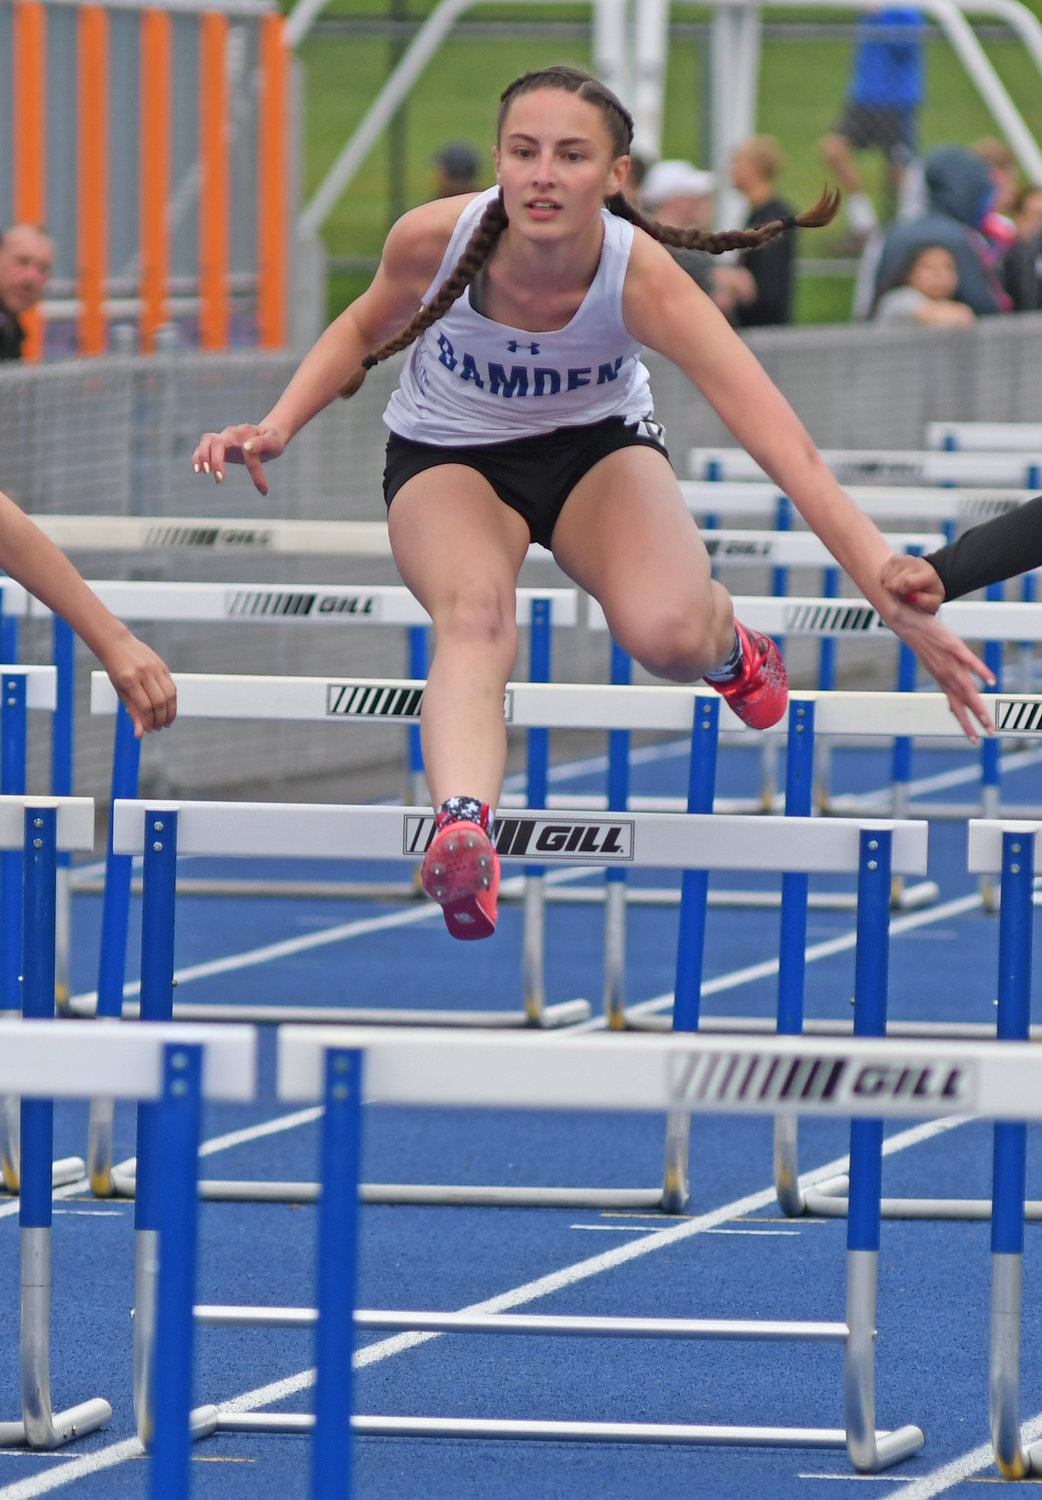 IN THE RACE — Camden junior Mary Buckingham in the 100-meter hurdles at the Oneida Invitational Friday. She finished in ninth place.